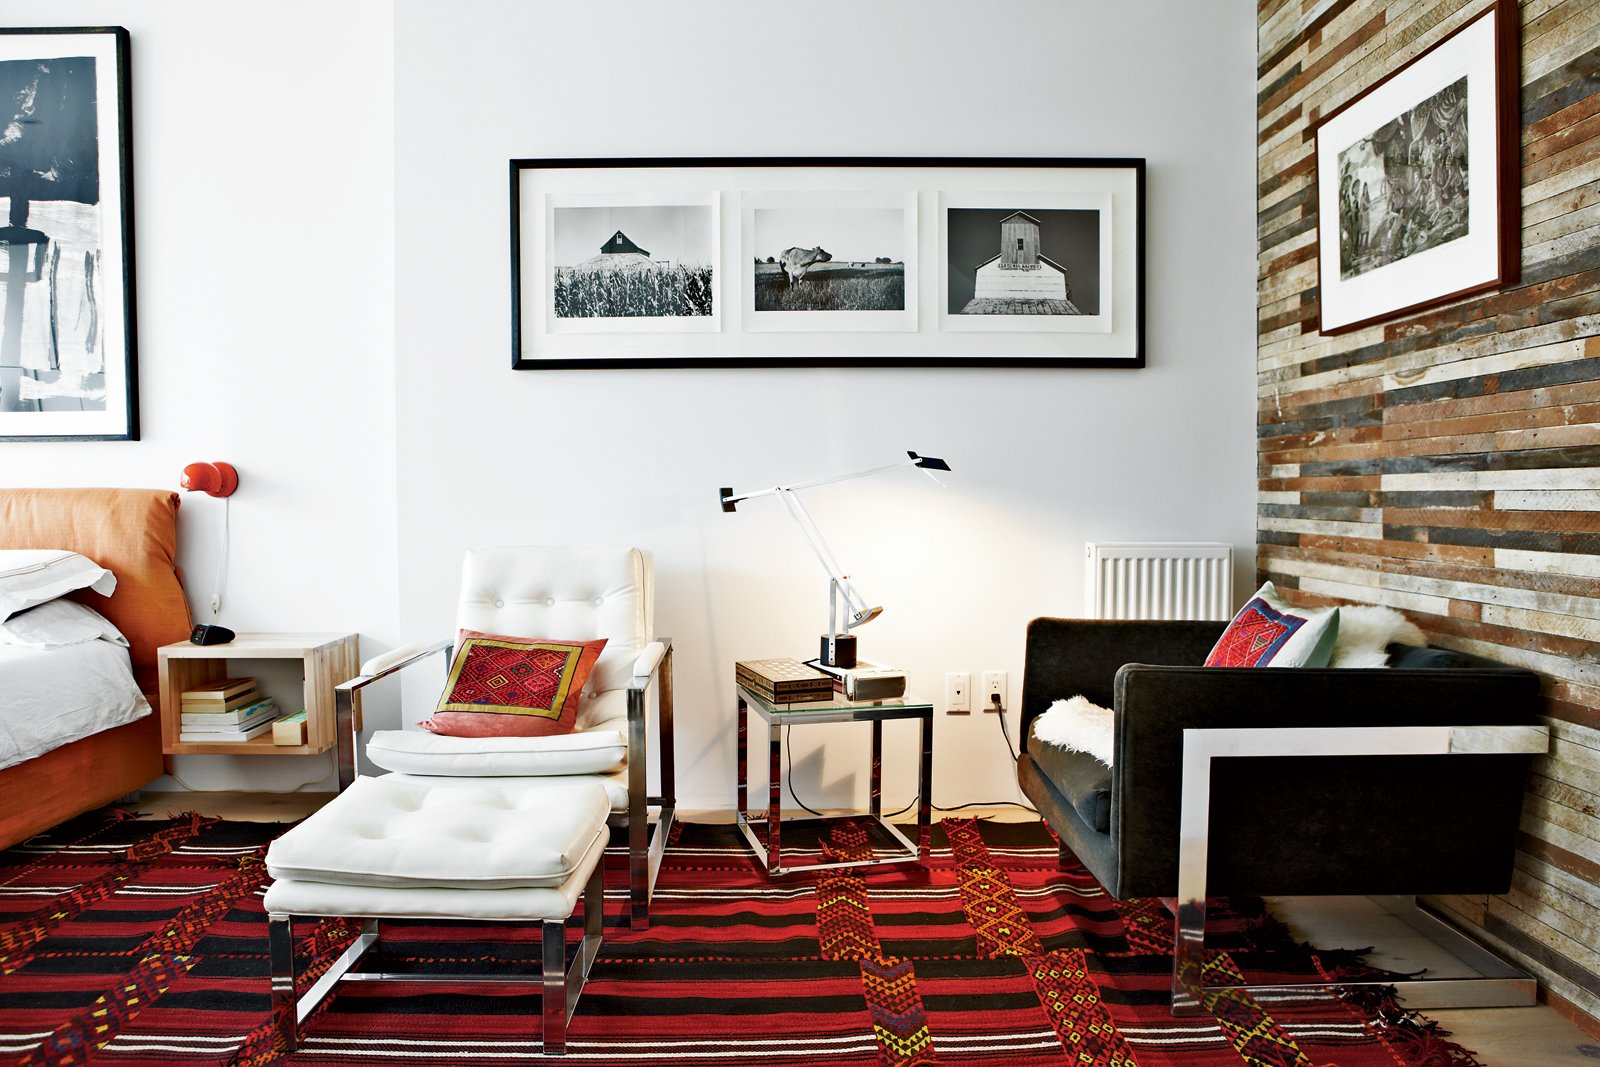 In the master bedroom, the couple opted for Artemide lighting: Vintage Eclisse table lamps by Vico Magistretti hang over the nightstands and a Tizio table lamp by Richard Sapper rests on a side table. The lounge chairs are vintage finds, and the rug is a Bedouin design purchased in Jerusalem. Don't Let the Sign Fool You, This Old Storefront is a Home - Photo 8 of 11